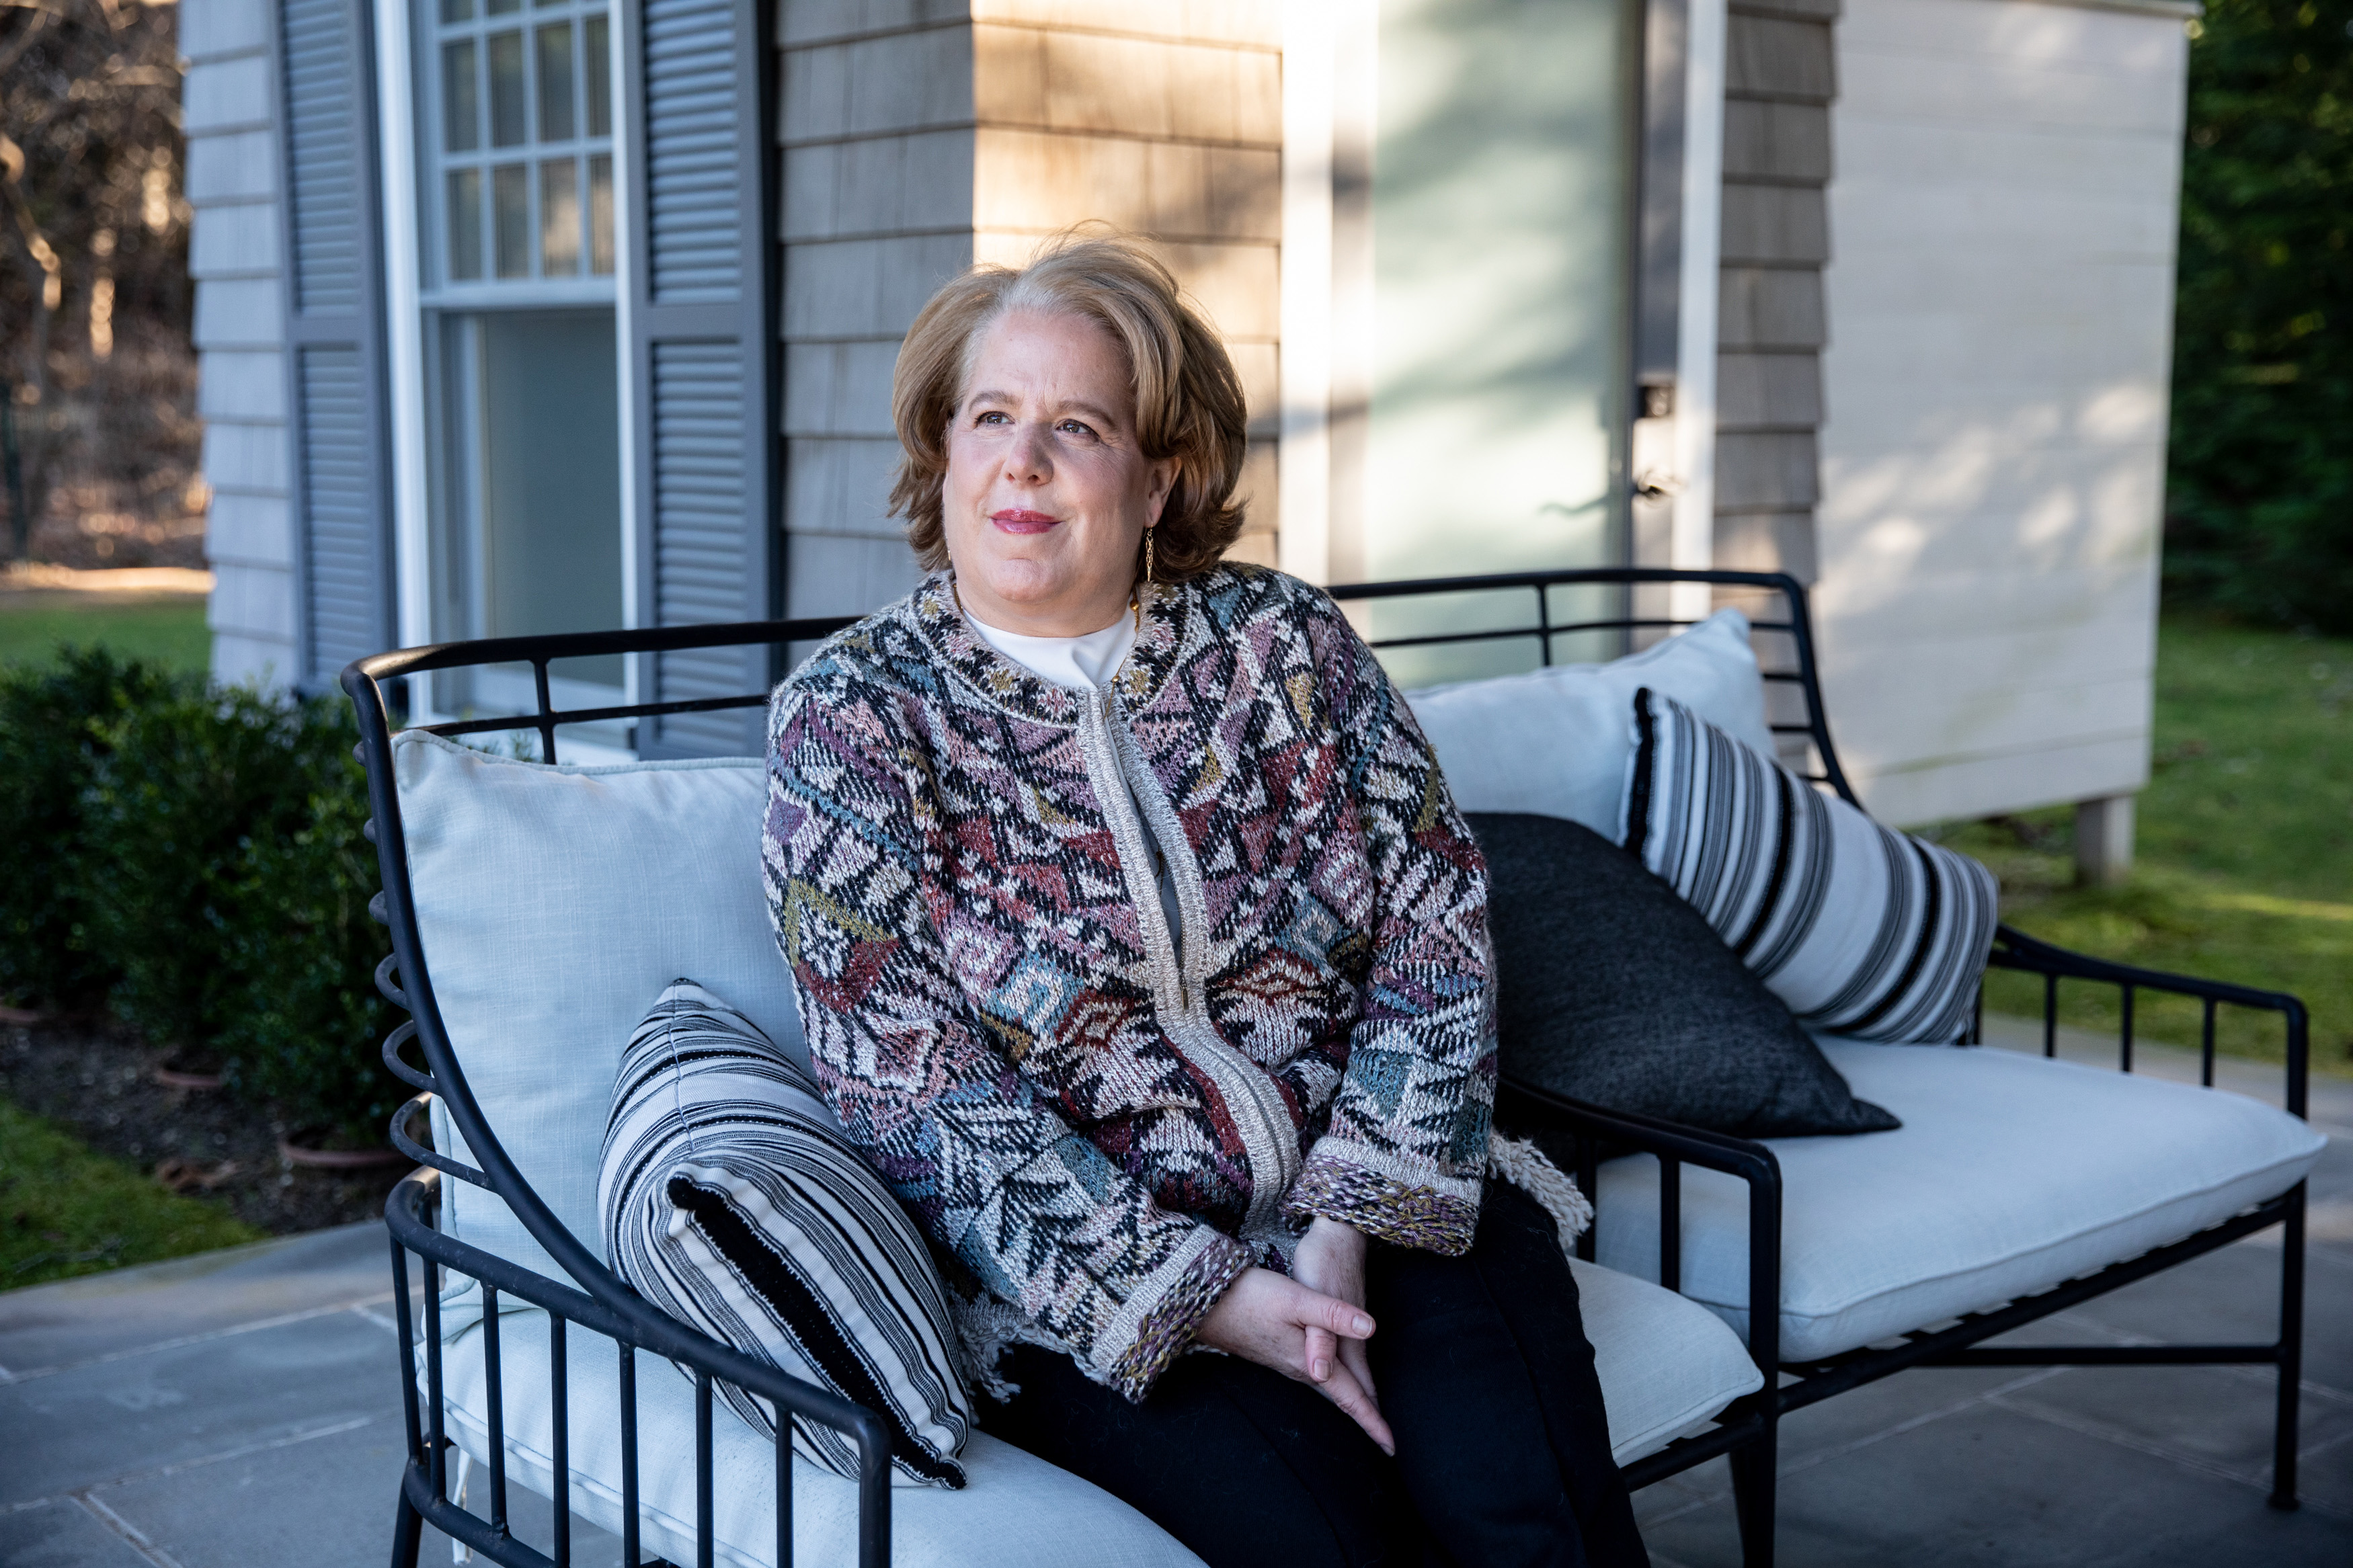 Lawyer Roberta Kaplan at her New York vacation home. She has three cases pending against President Donald Trump. MUST CREDIT: Photo for The Washington Post by Jackie Molloy